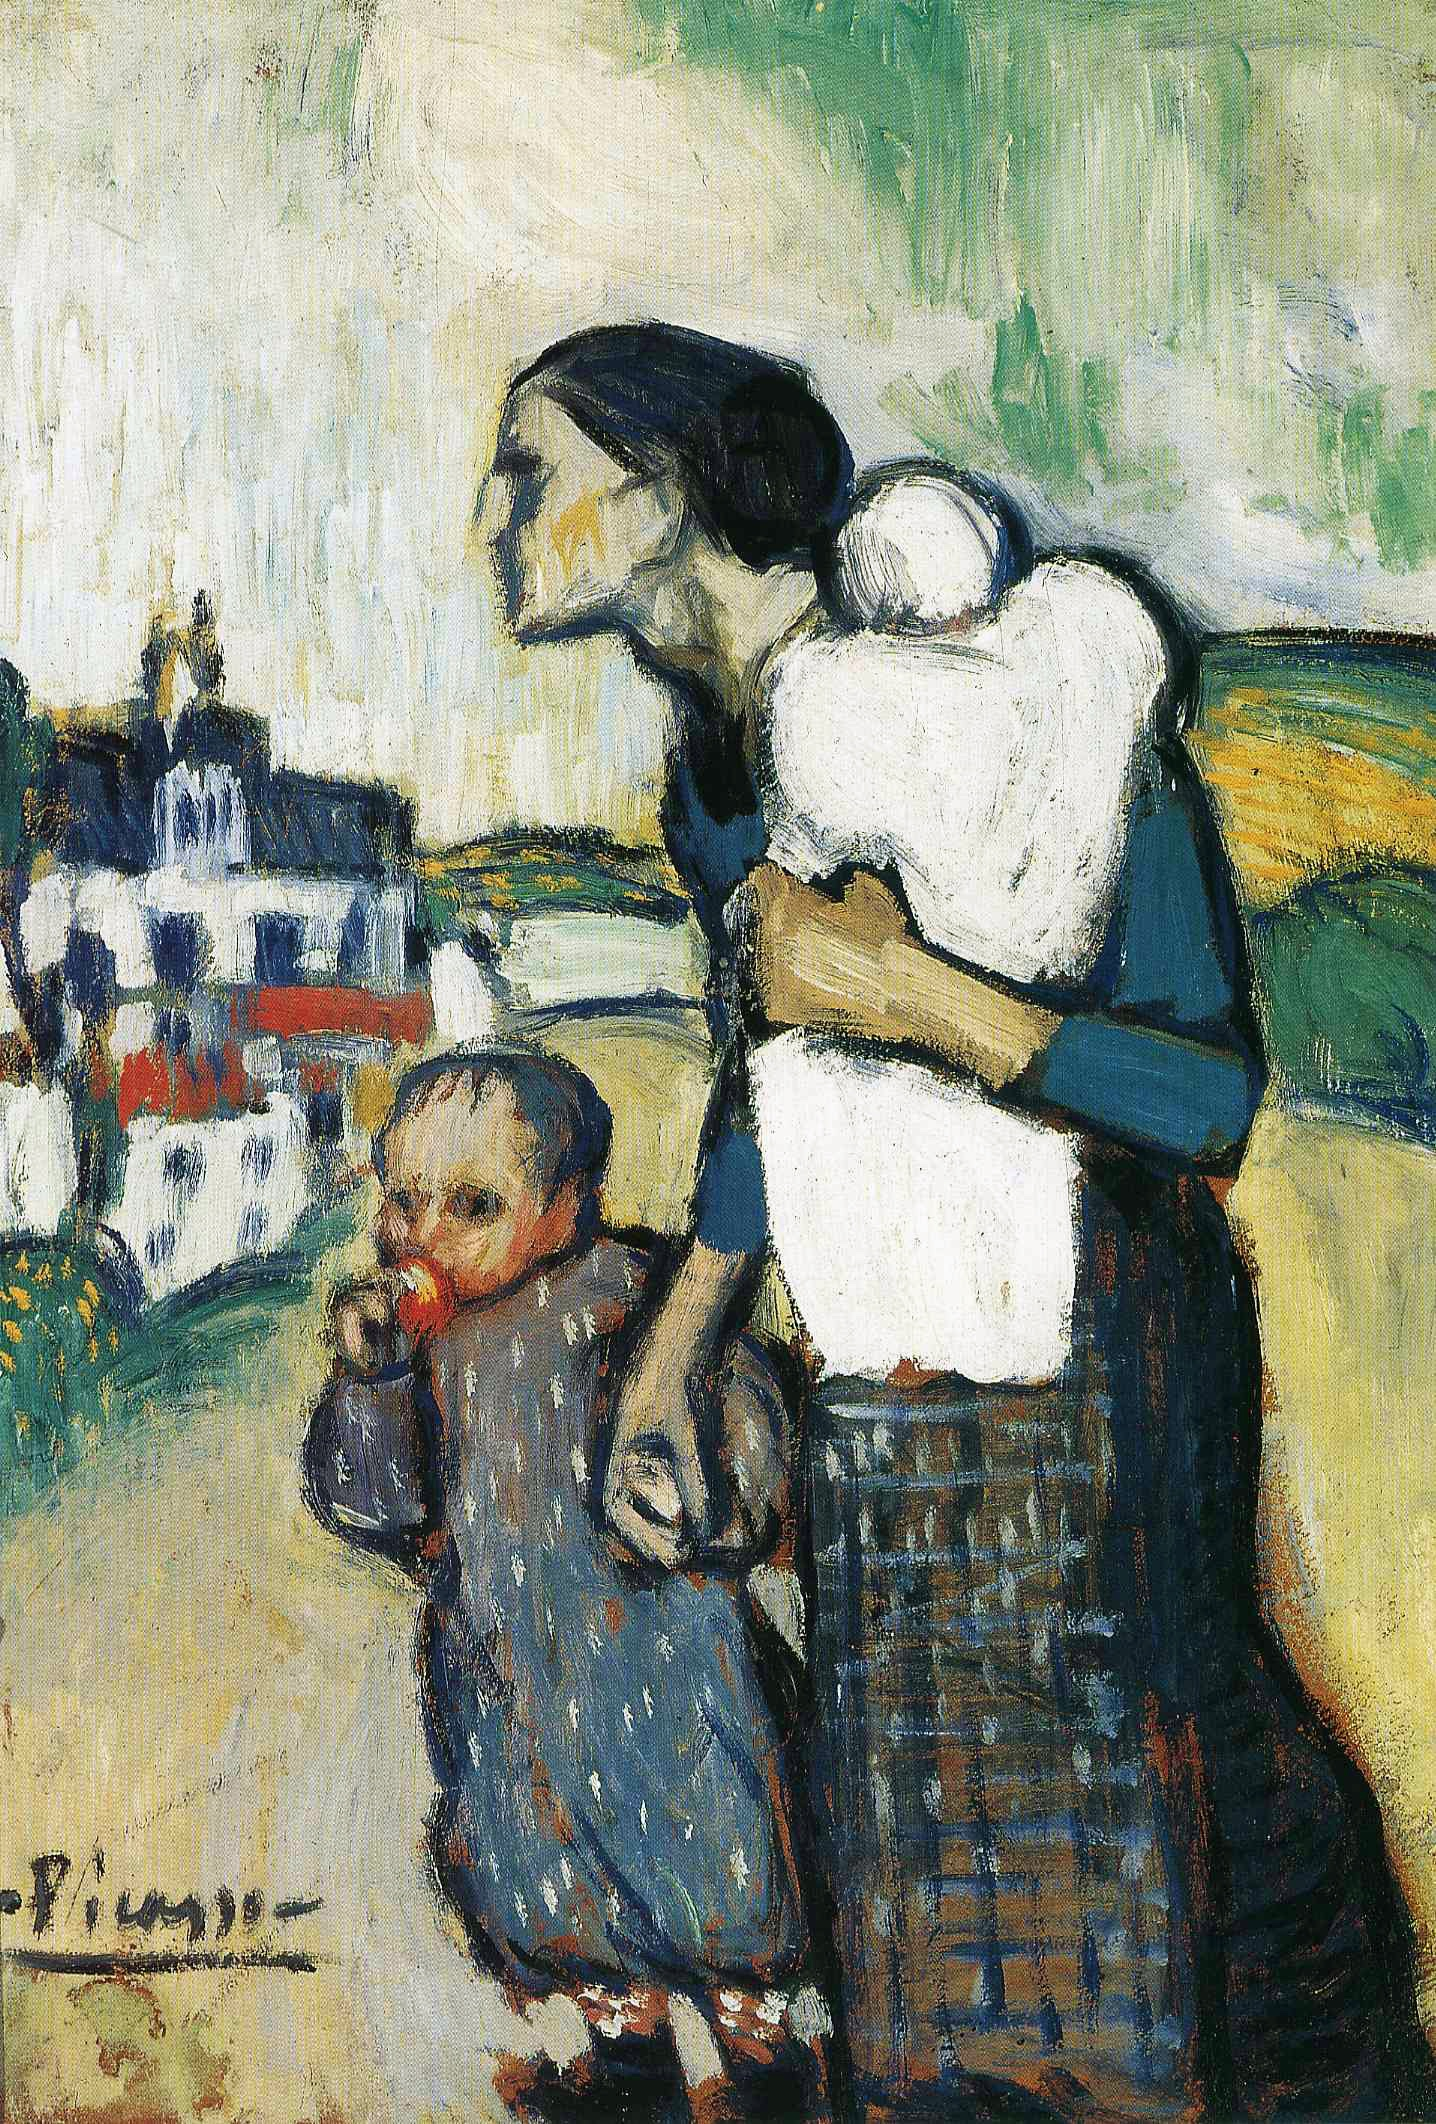 Pablo Picasso (Spanish, 1881-1973): The Mother, 1901. | I Require Art